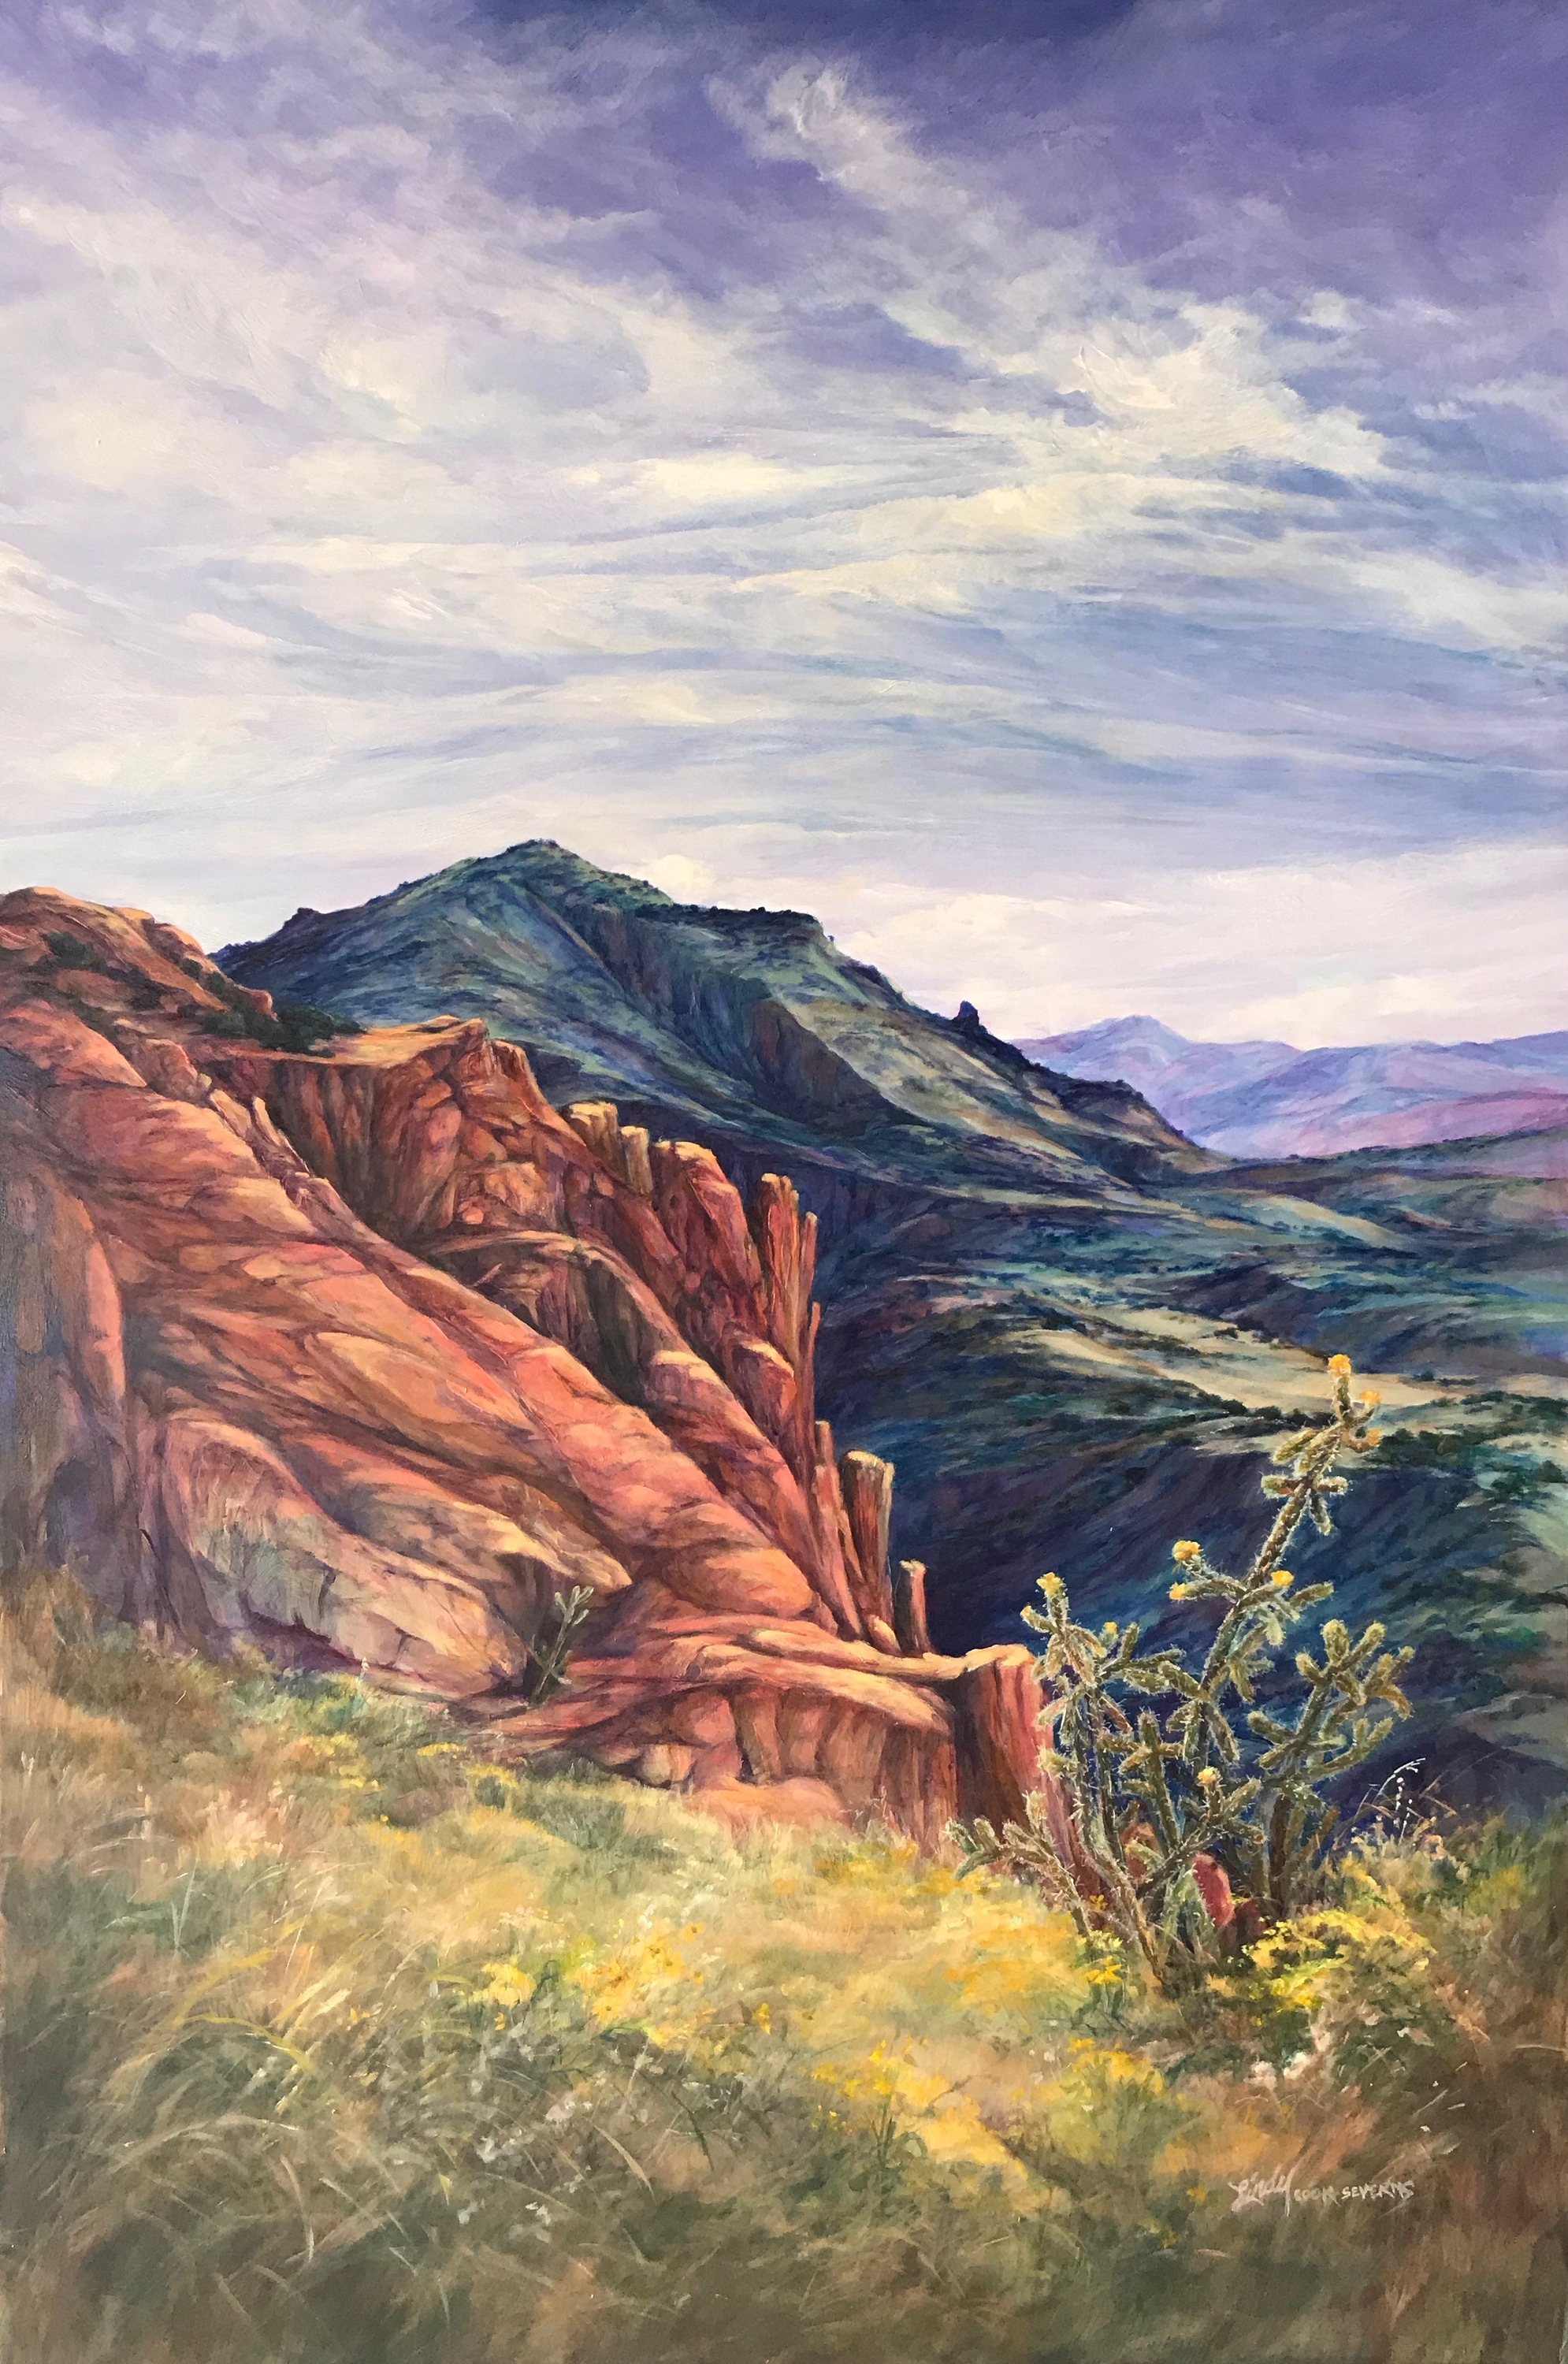 Where the mountains touch the sky 36x24 oil lindy c severns pmdcei